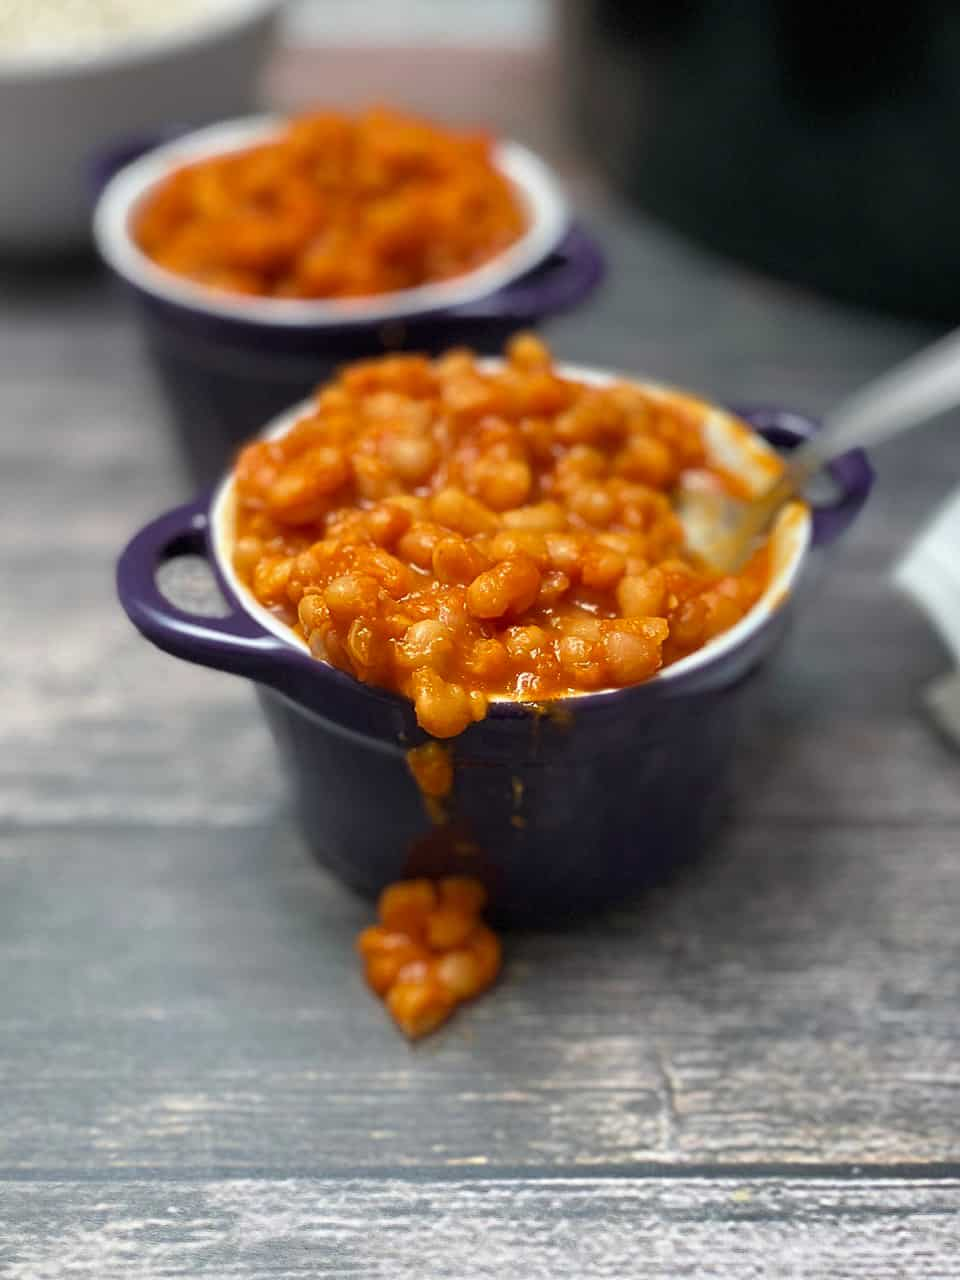 spoon inside purple bowl filled with saucy baked beans